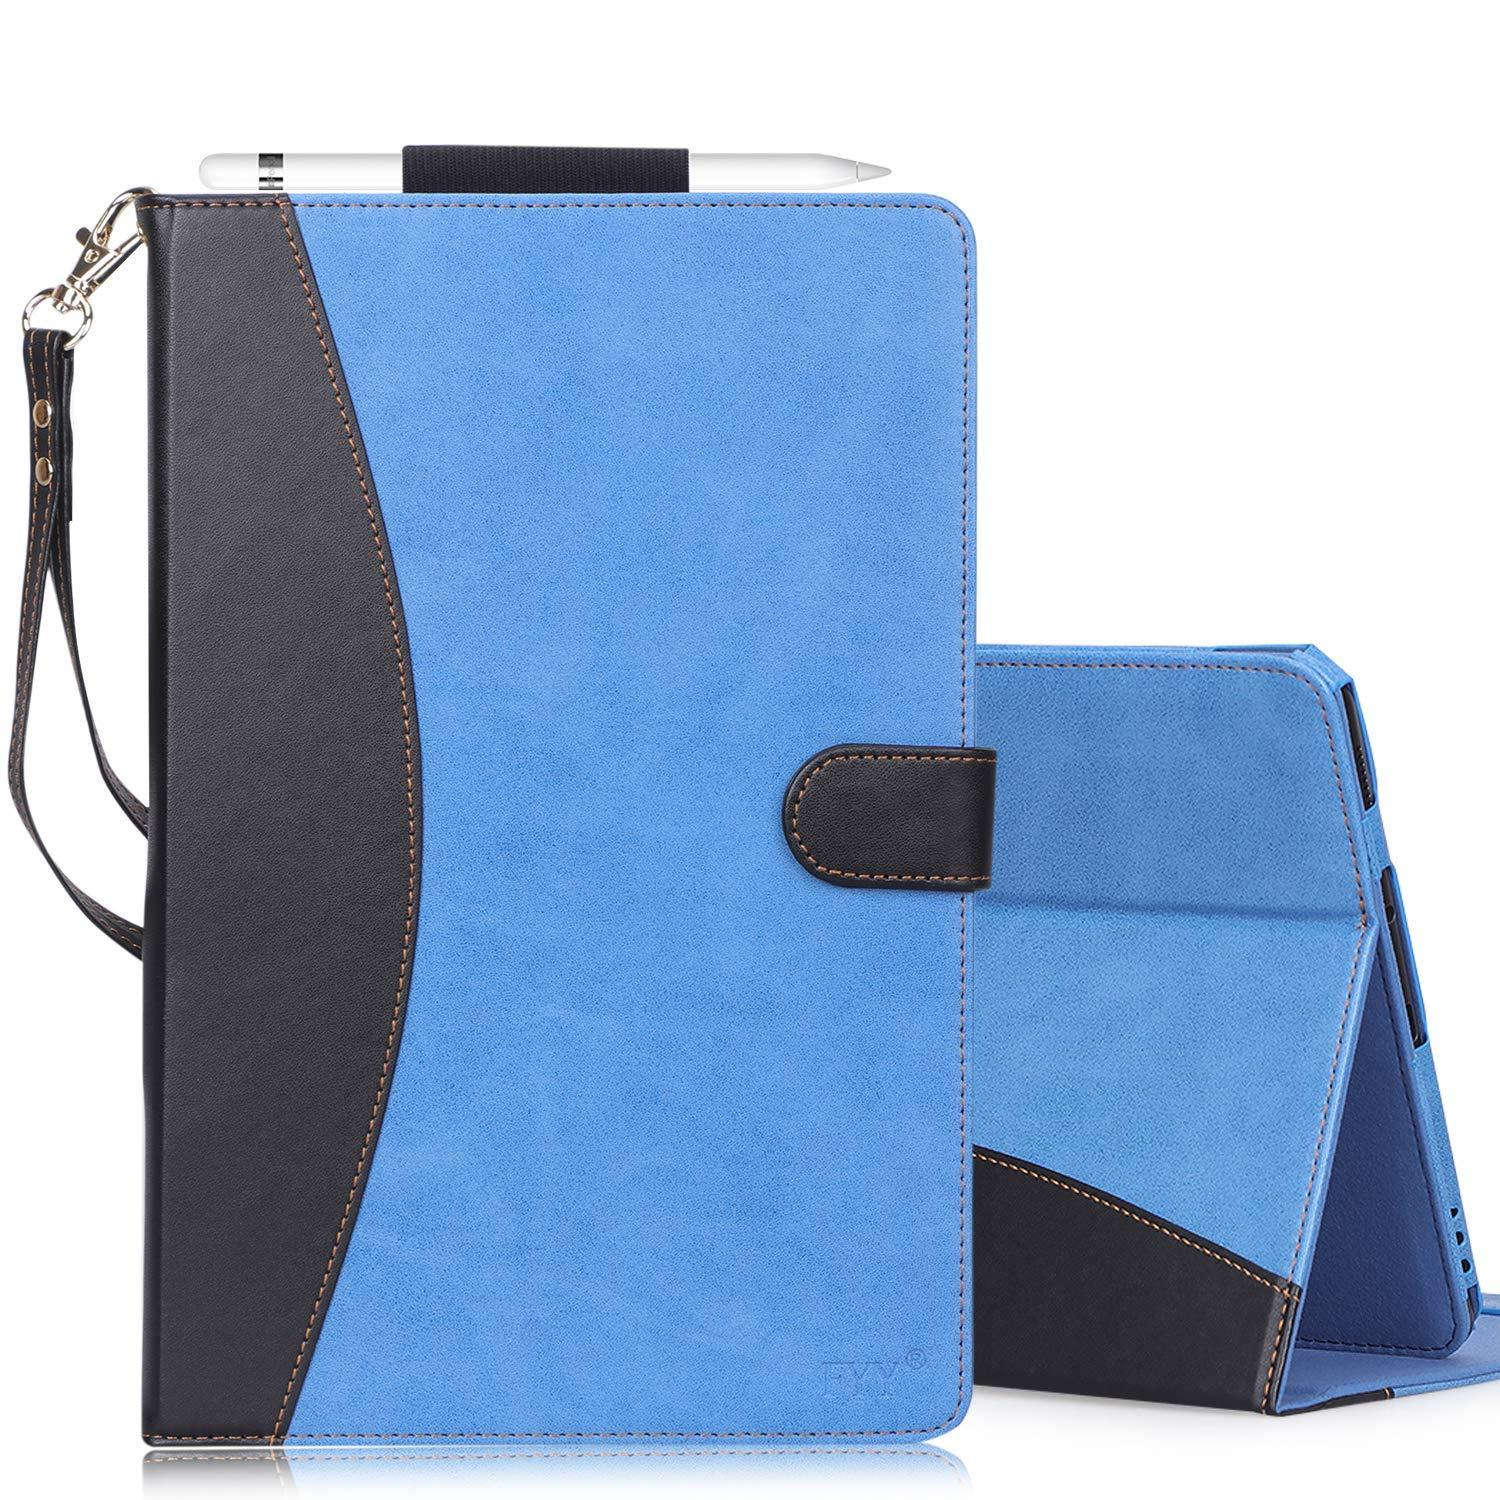 Premium Leather Folio Case for Galaxy Tab S4 10.5""